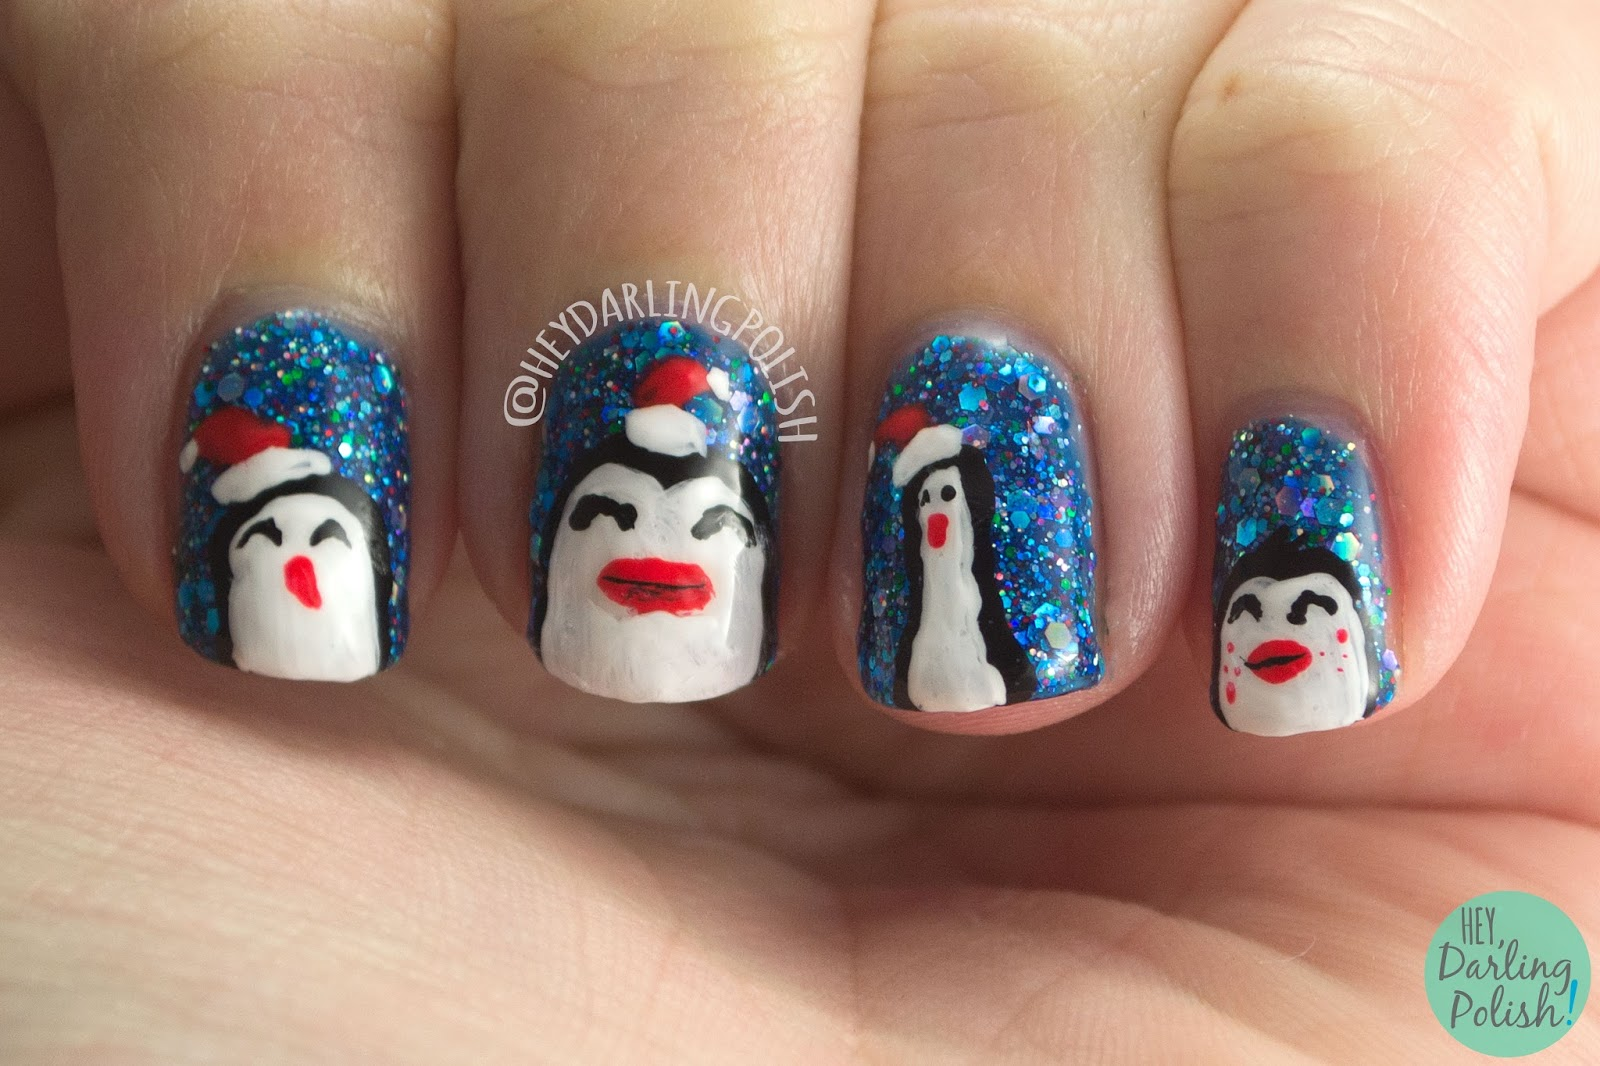 penguins, nail art, too cold to hold, glitter, nails, nail polish, indie nail polish, indie polish, kbshimmer, hey darling polish, winter 2014 collection